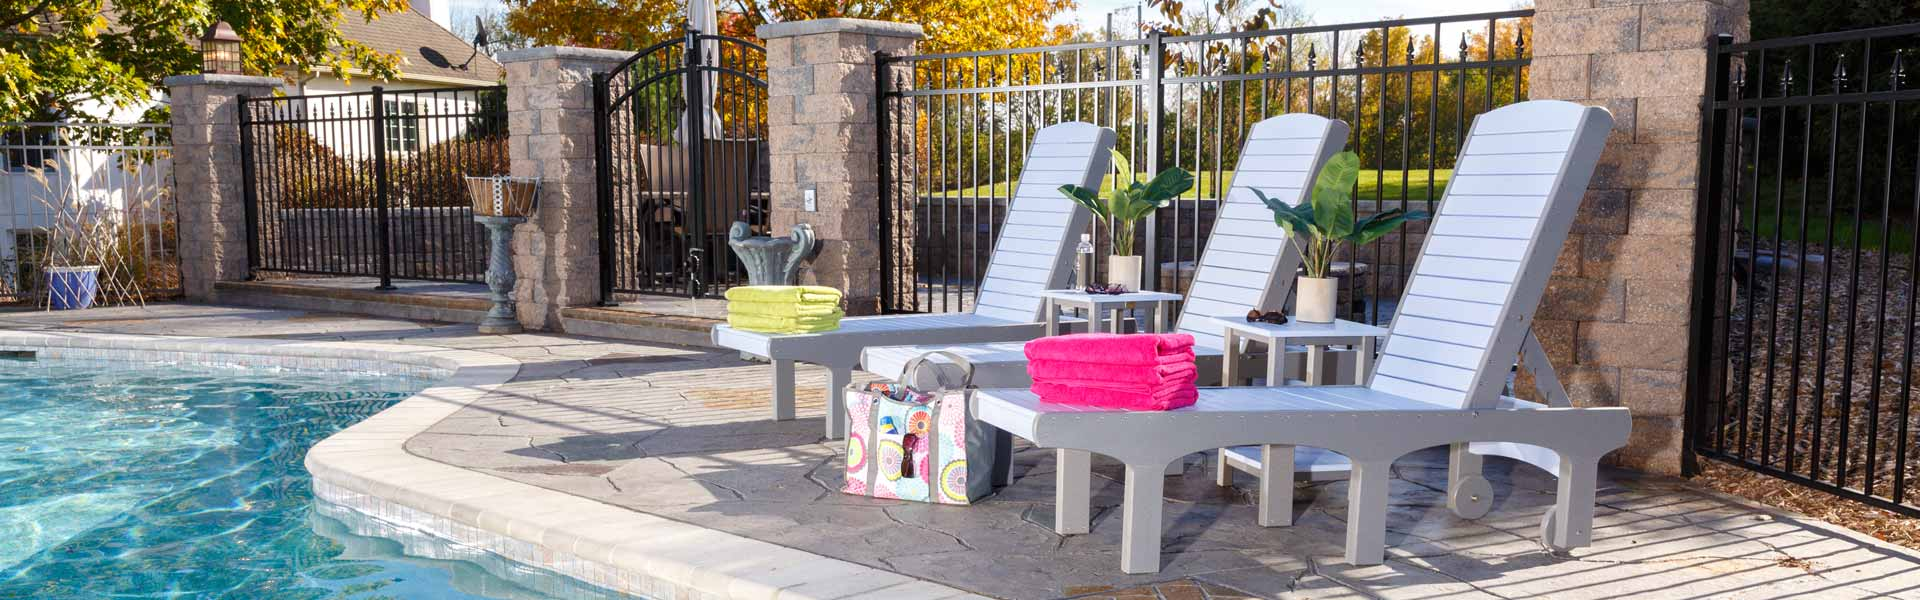 Poly lounge chairs by pool